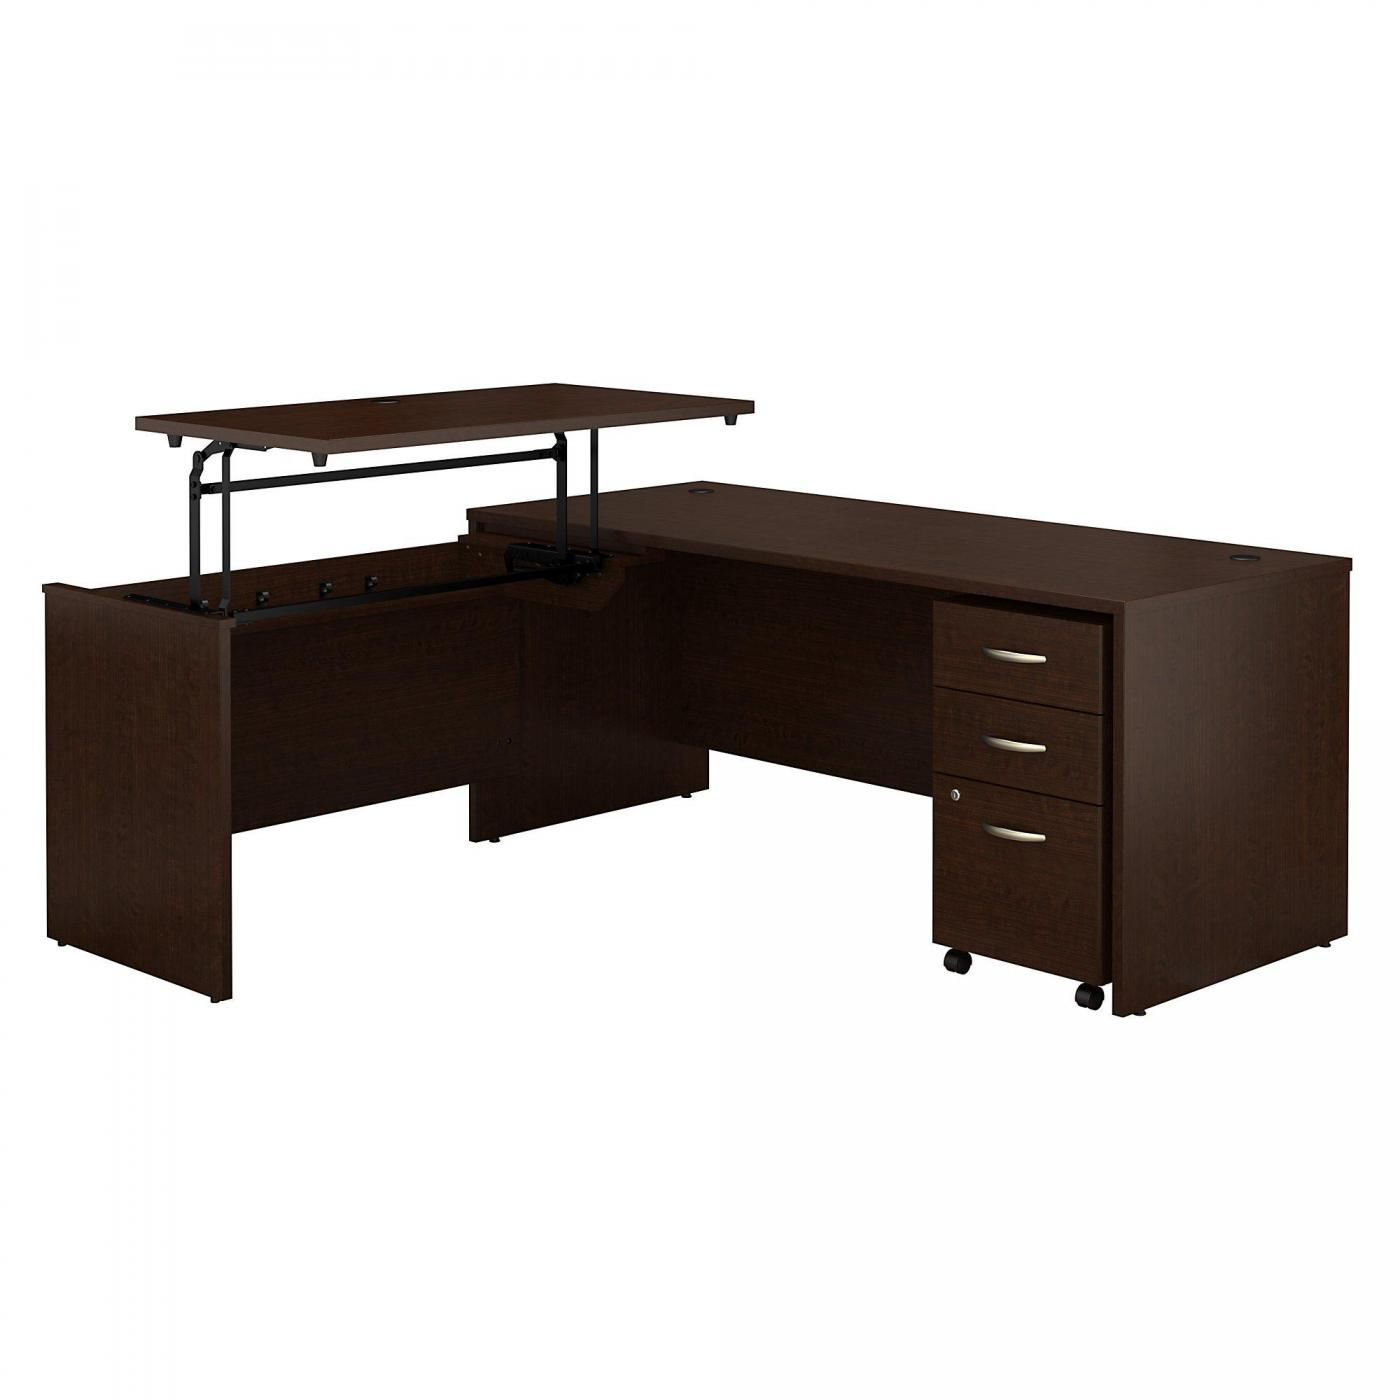 </b></font><b>BUSH BUSINESS FURNITURE SERIES C 72W X 30D 3 POSITION SIT TO STAND L SHAPED DESK WITH MOBILE FILE CABINET. FREE SHIPPING. VIDEO:</b></font>  VIDEO BELOW. <p>RATING:&#11088;&#11088;&#11088;&#11088;&#11088;</b></font></b>